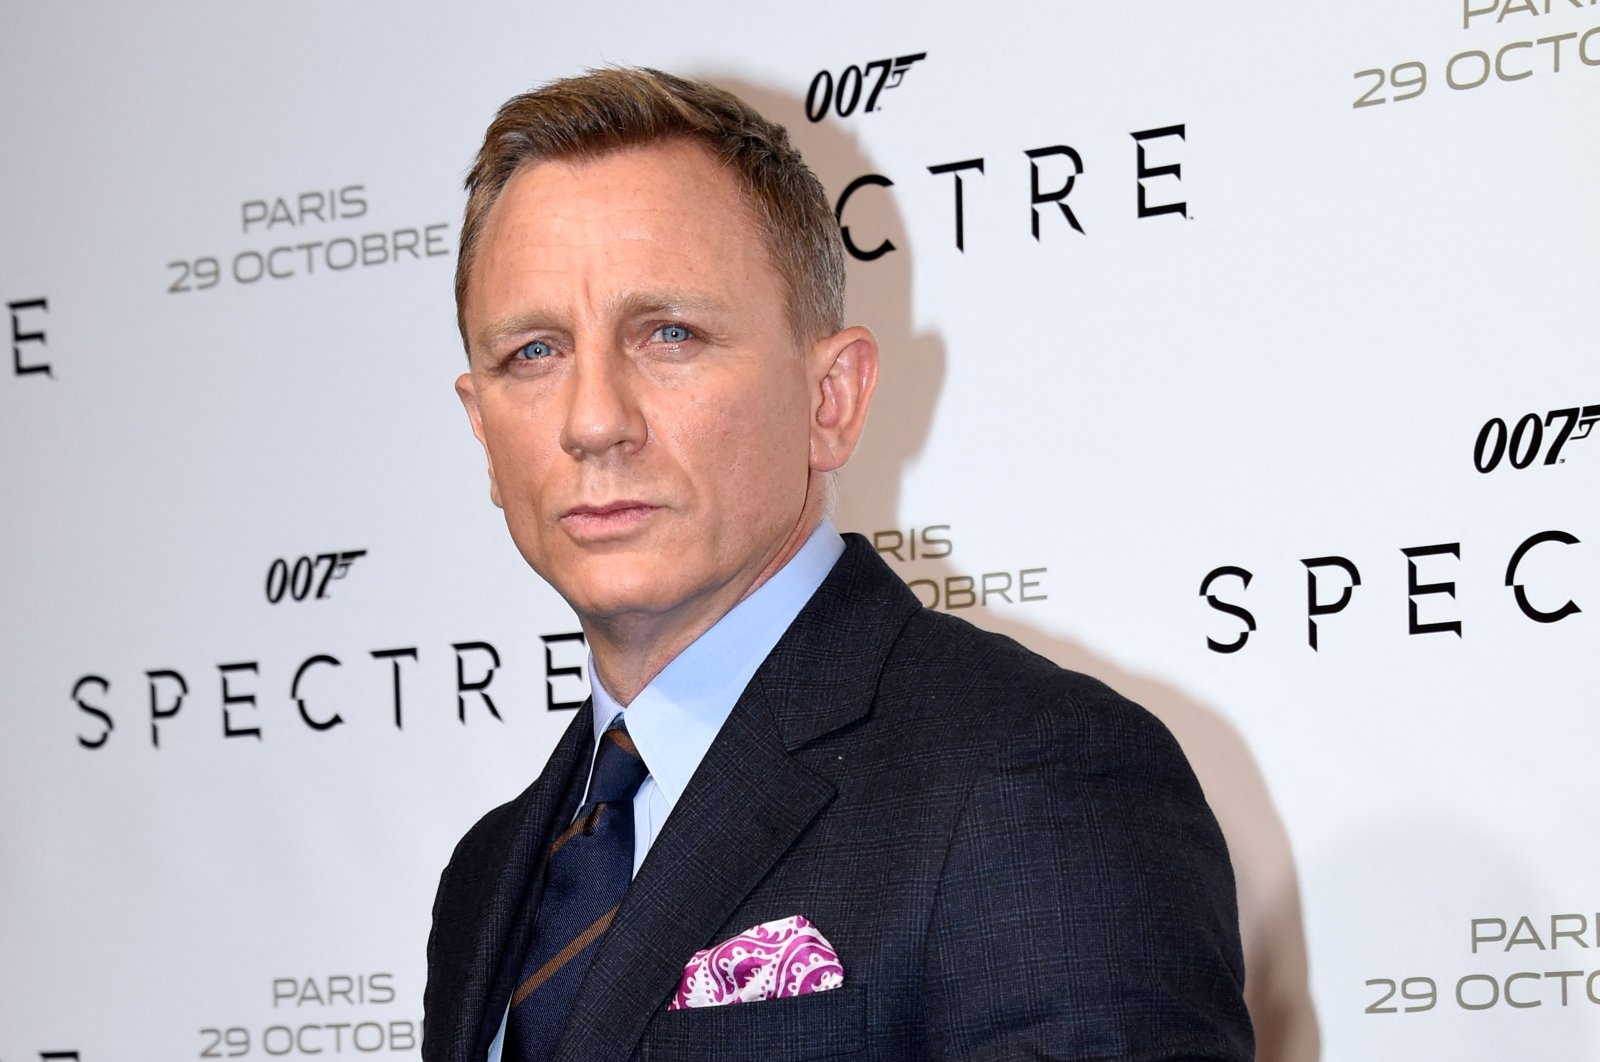 """British actor Daniel Craig poses for pictures during the French premiere of the James Bond film """"Spectre""""in Paris, France, Nov. 1, 2015. (AFP Photo)"""